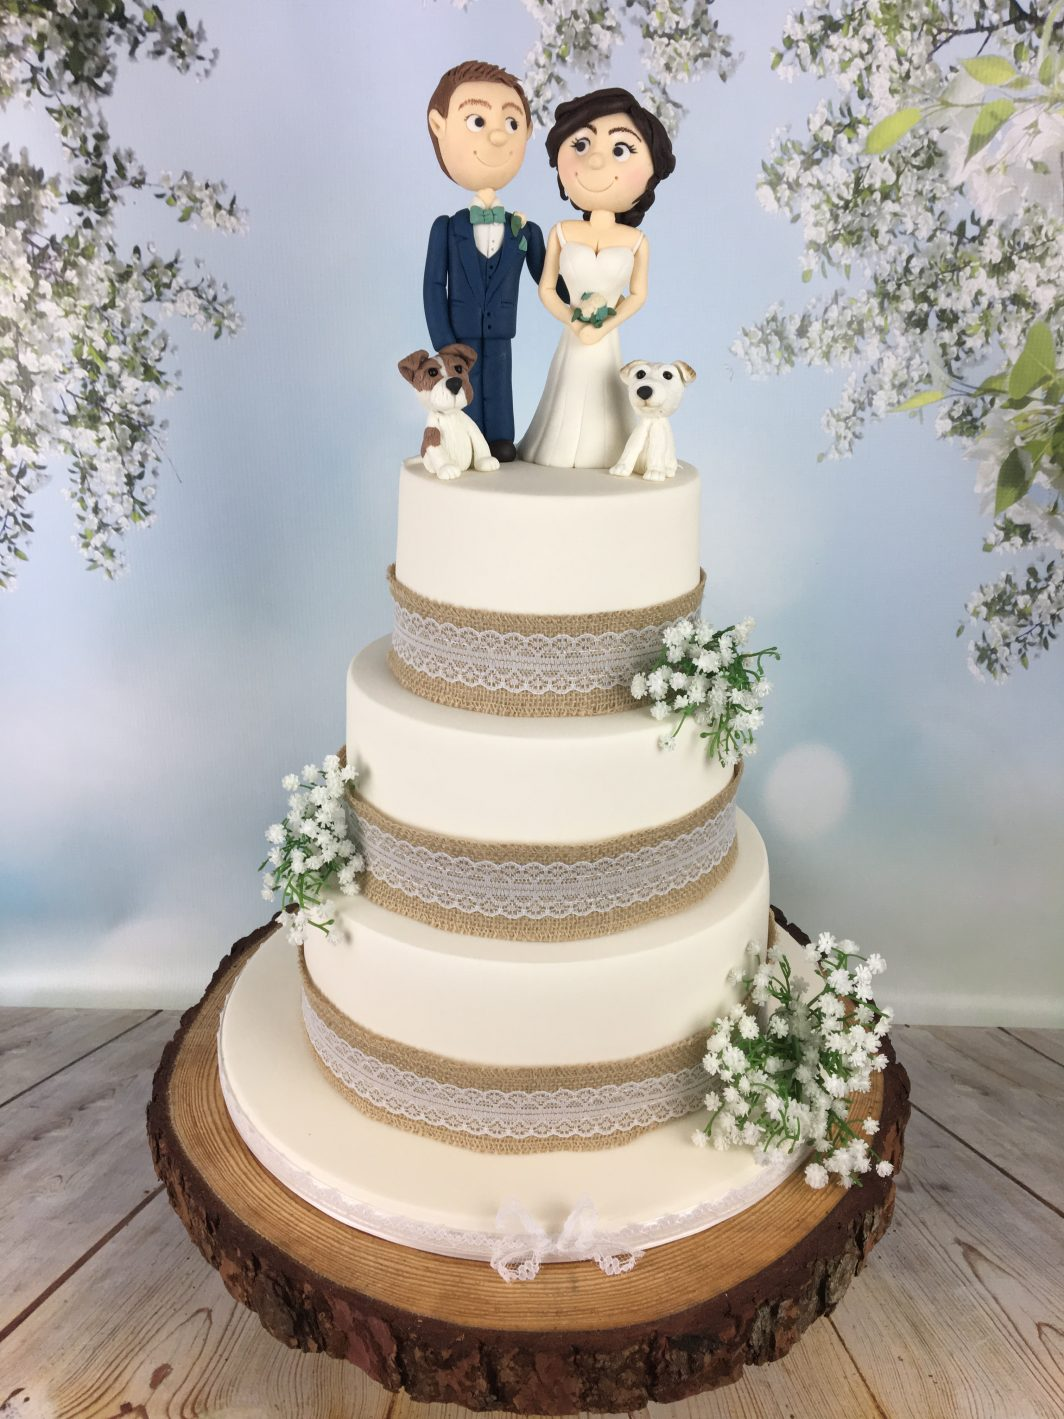 bride and groom topper wedding cake